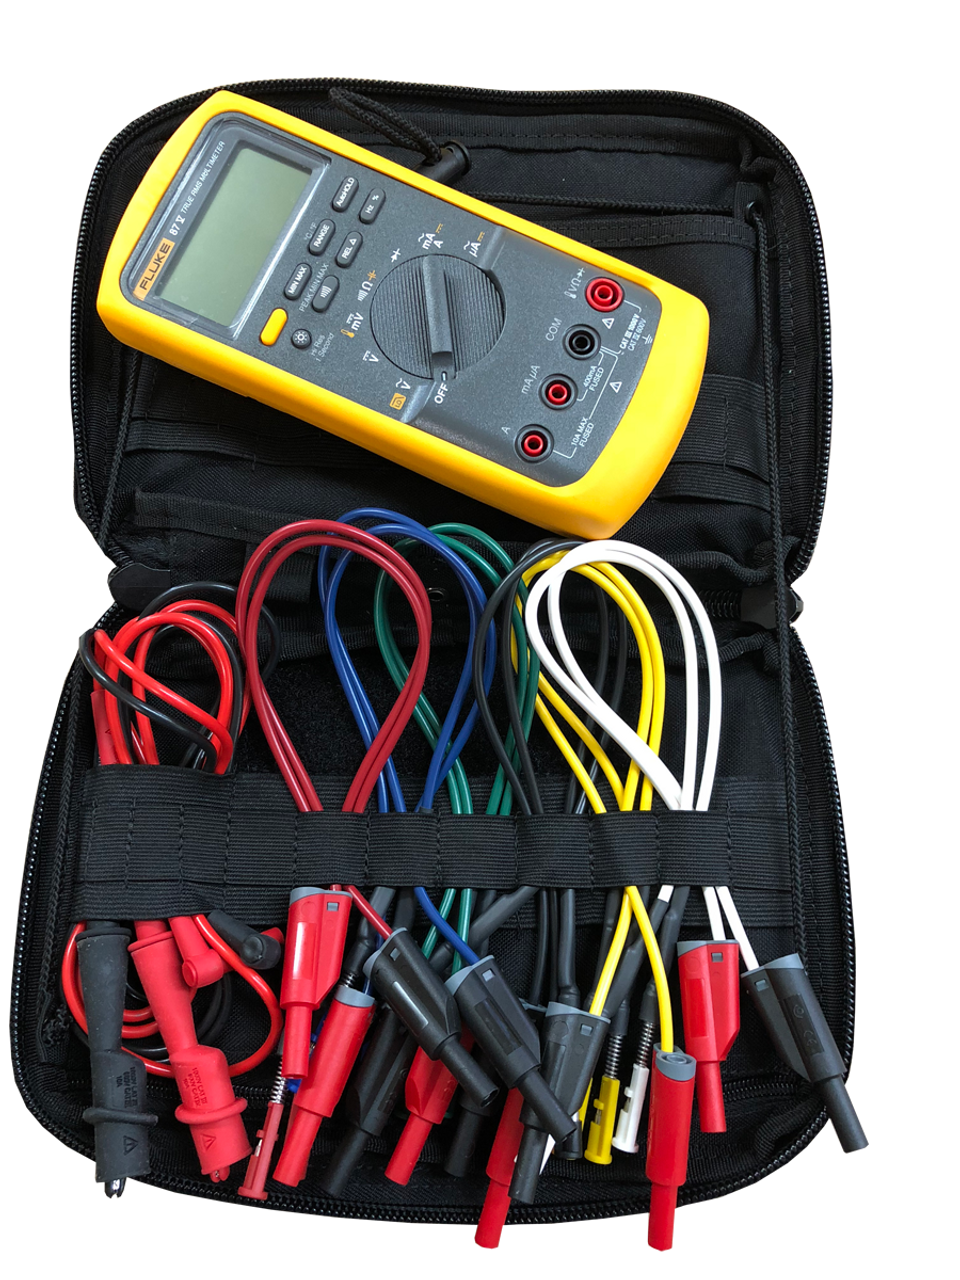 Wire Piercing Probe Kit With Fluke 87v Ideal Supply Inc Dba Ideal